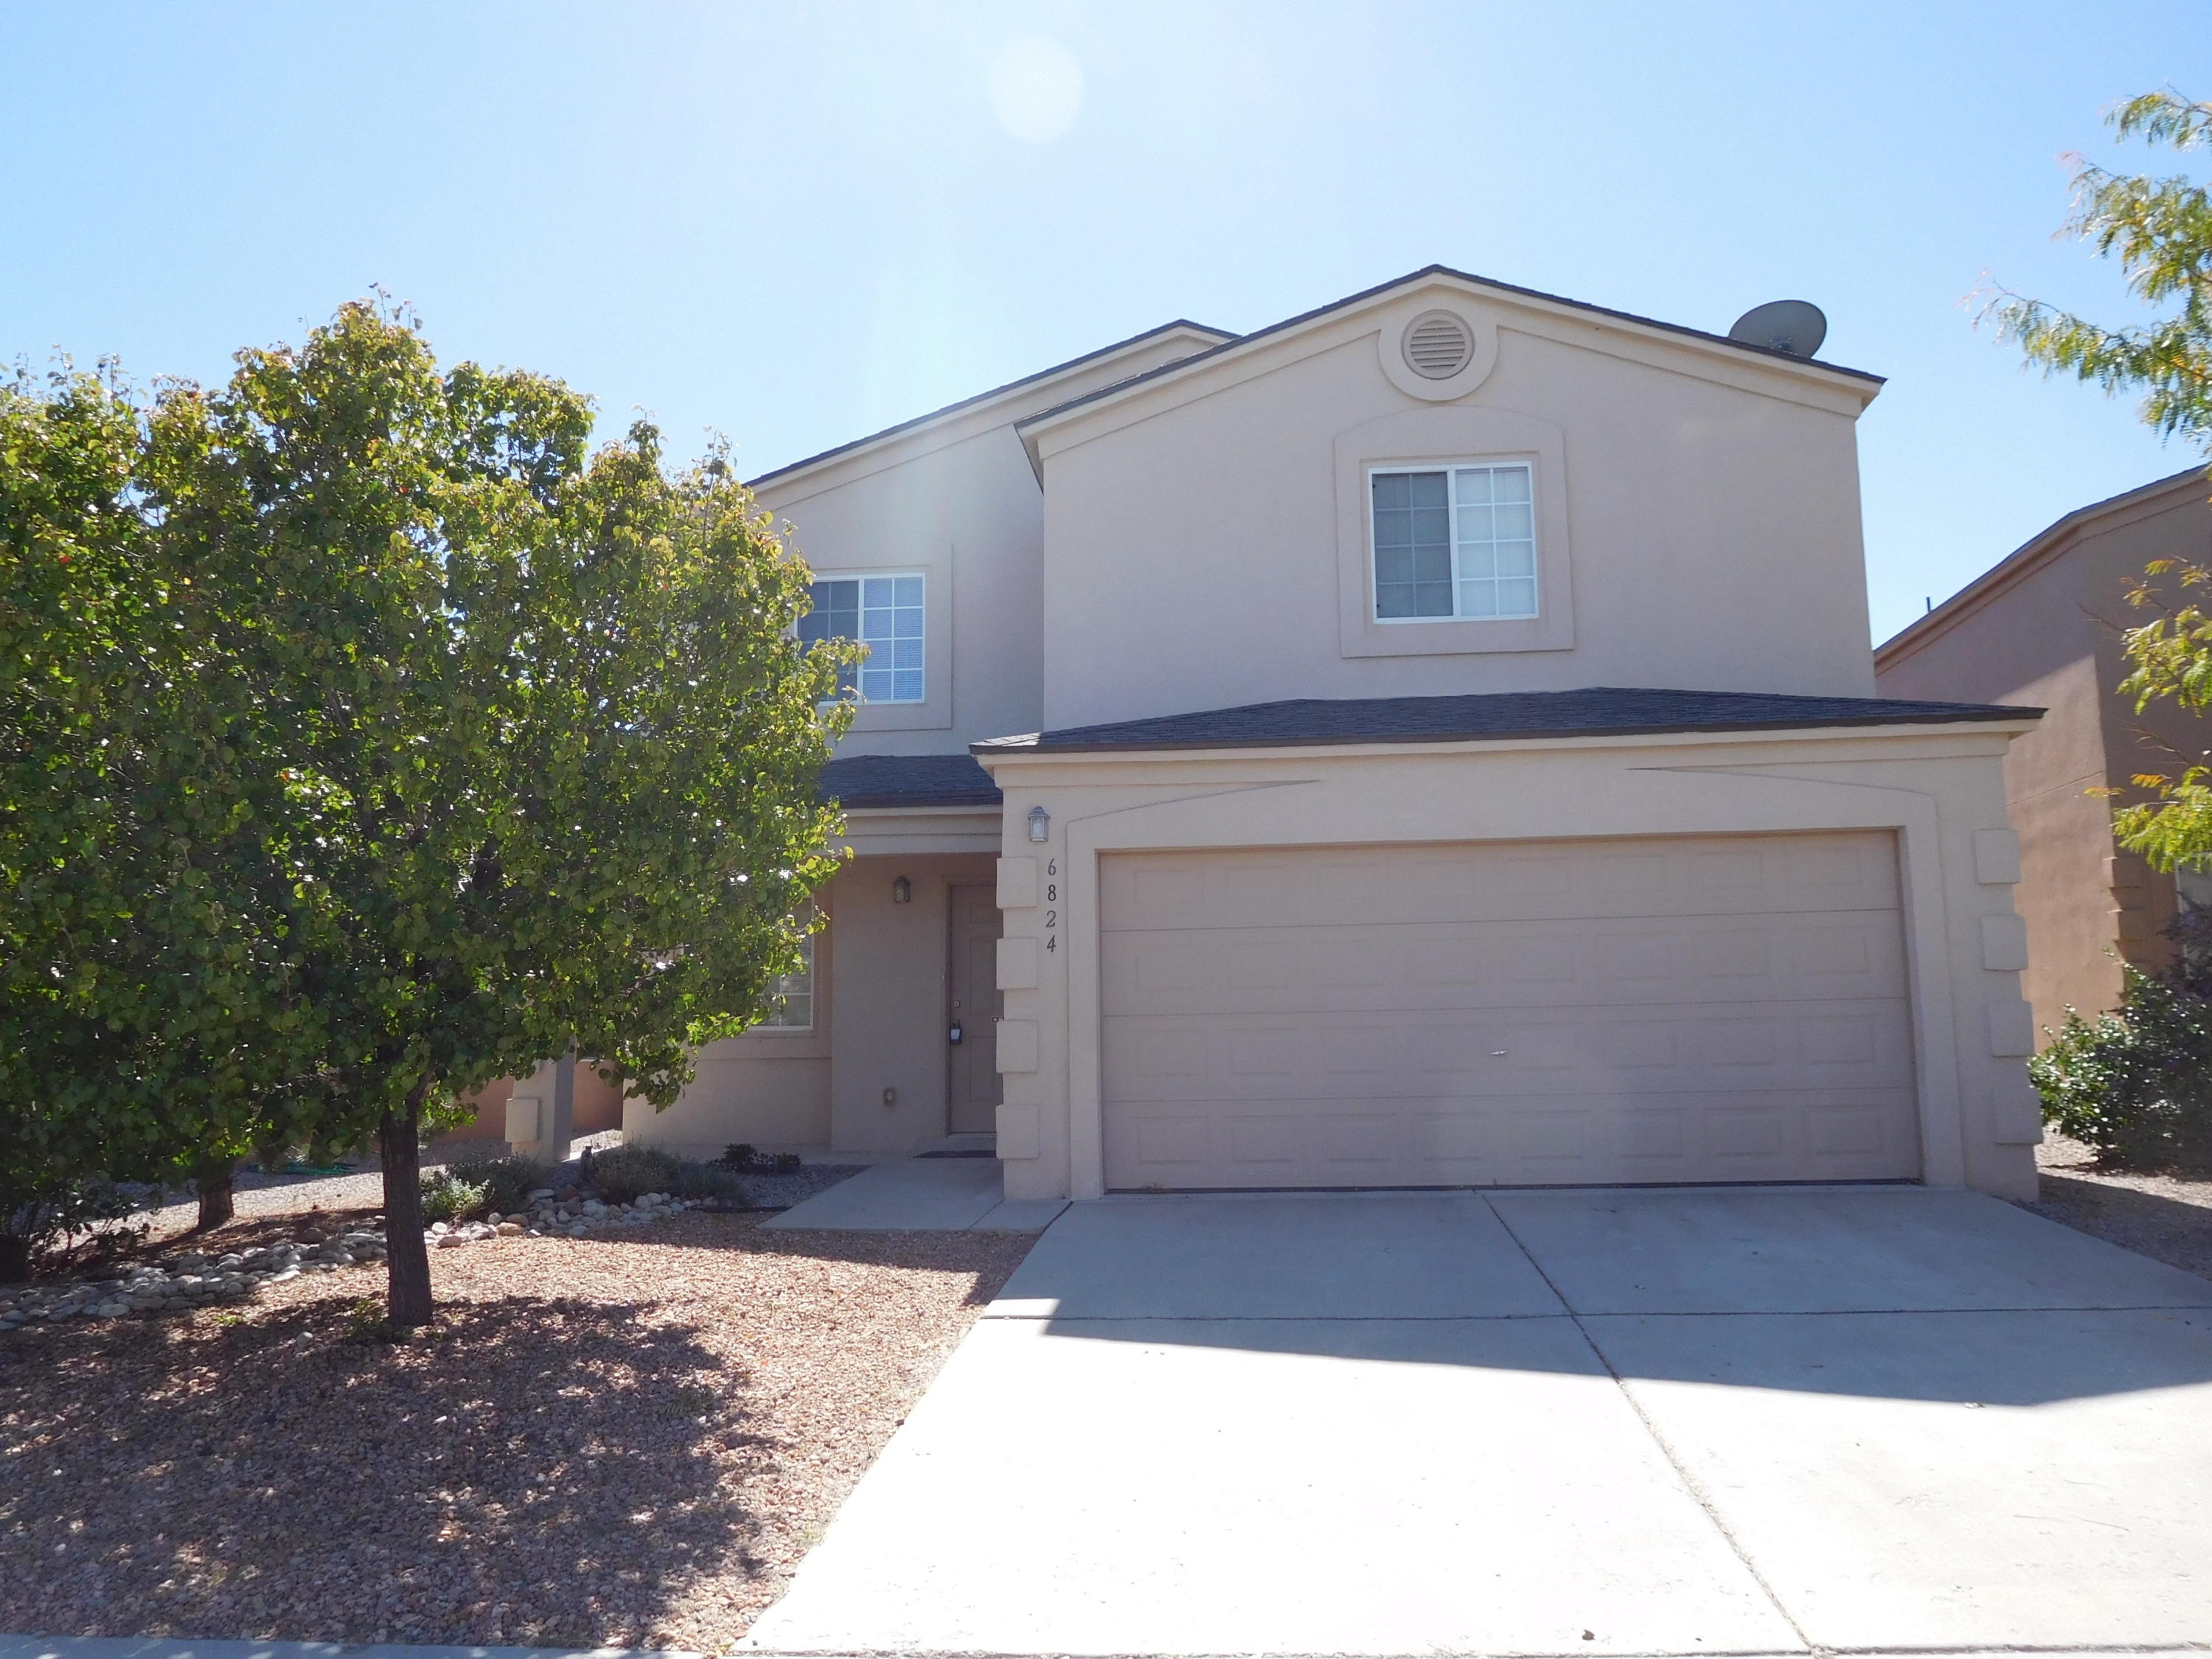 Spacious 3 bedroom 2.5 bath home in great Ventana Ranch location. Two living areas, gas log fireplace, kitchen island and much more.